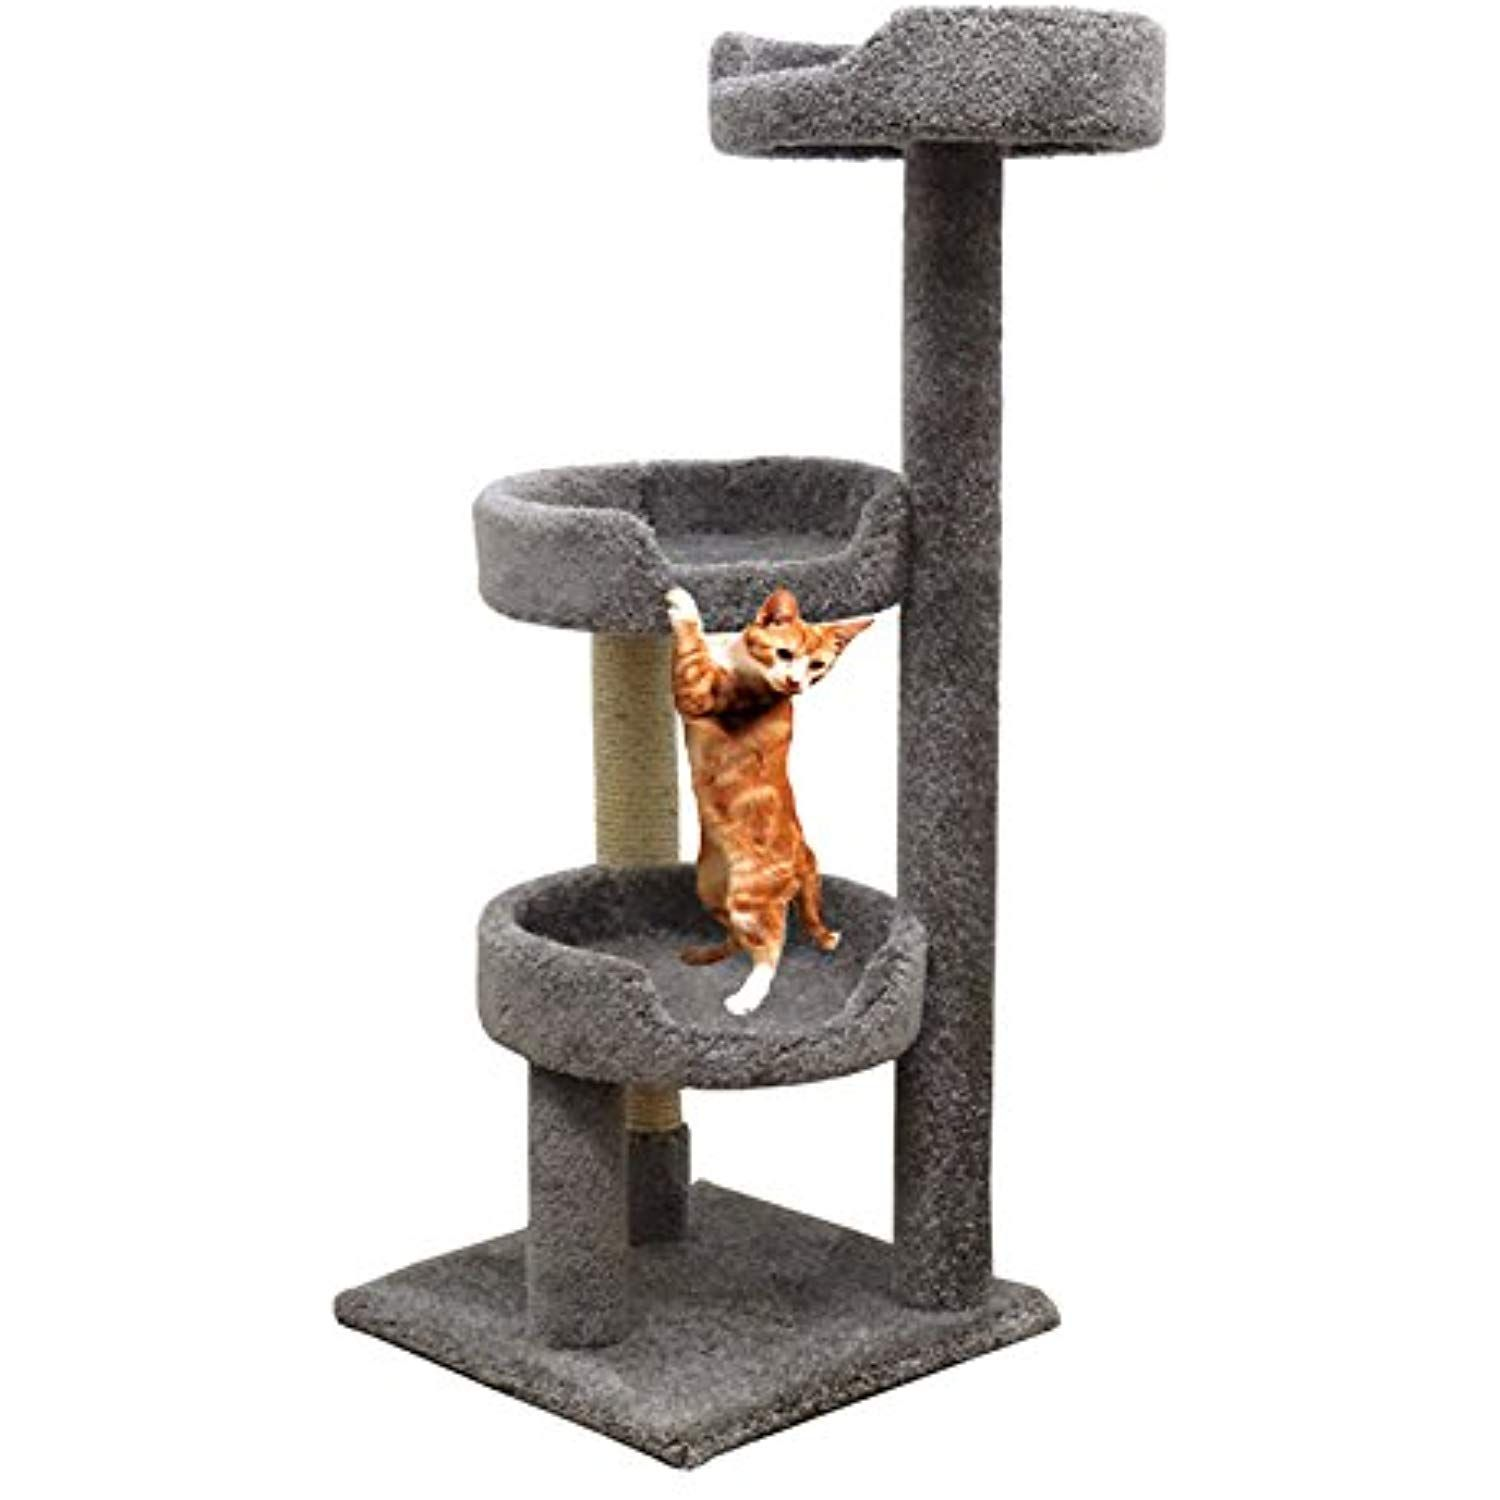 Kitty Tower Scratching In Gray Cat Tree